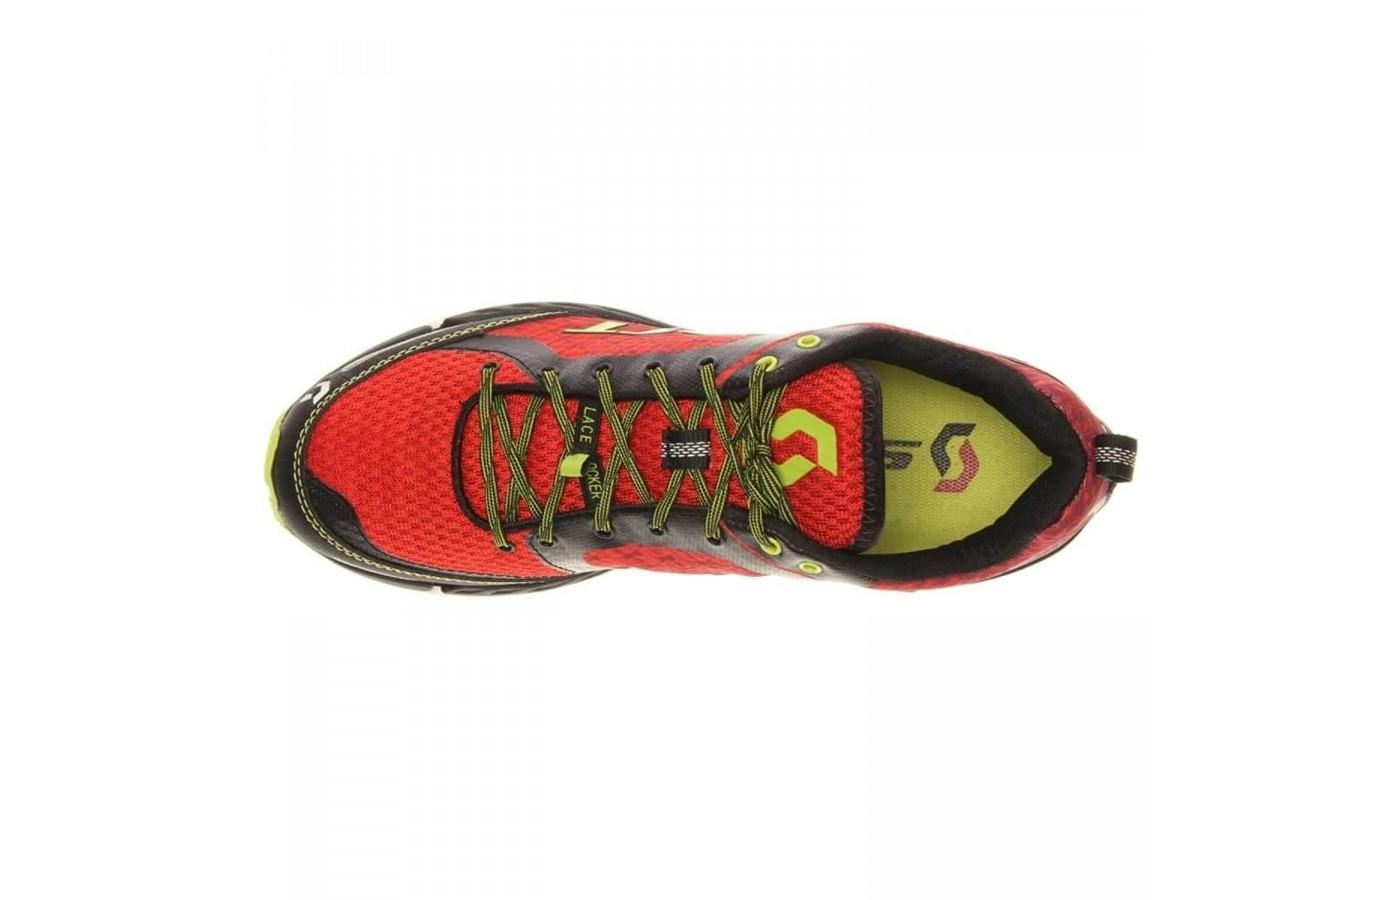 Breathable mesh upper and lock laces of the Scott T2 Kinabalu 2.0